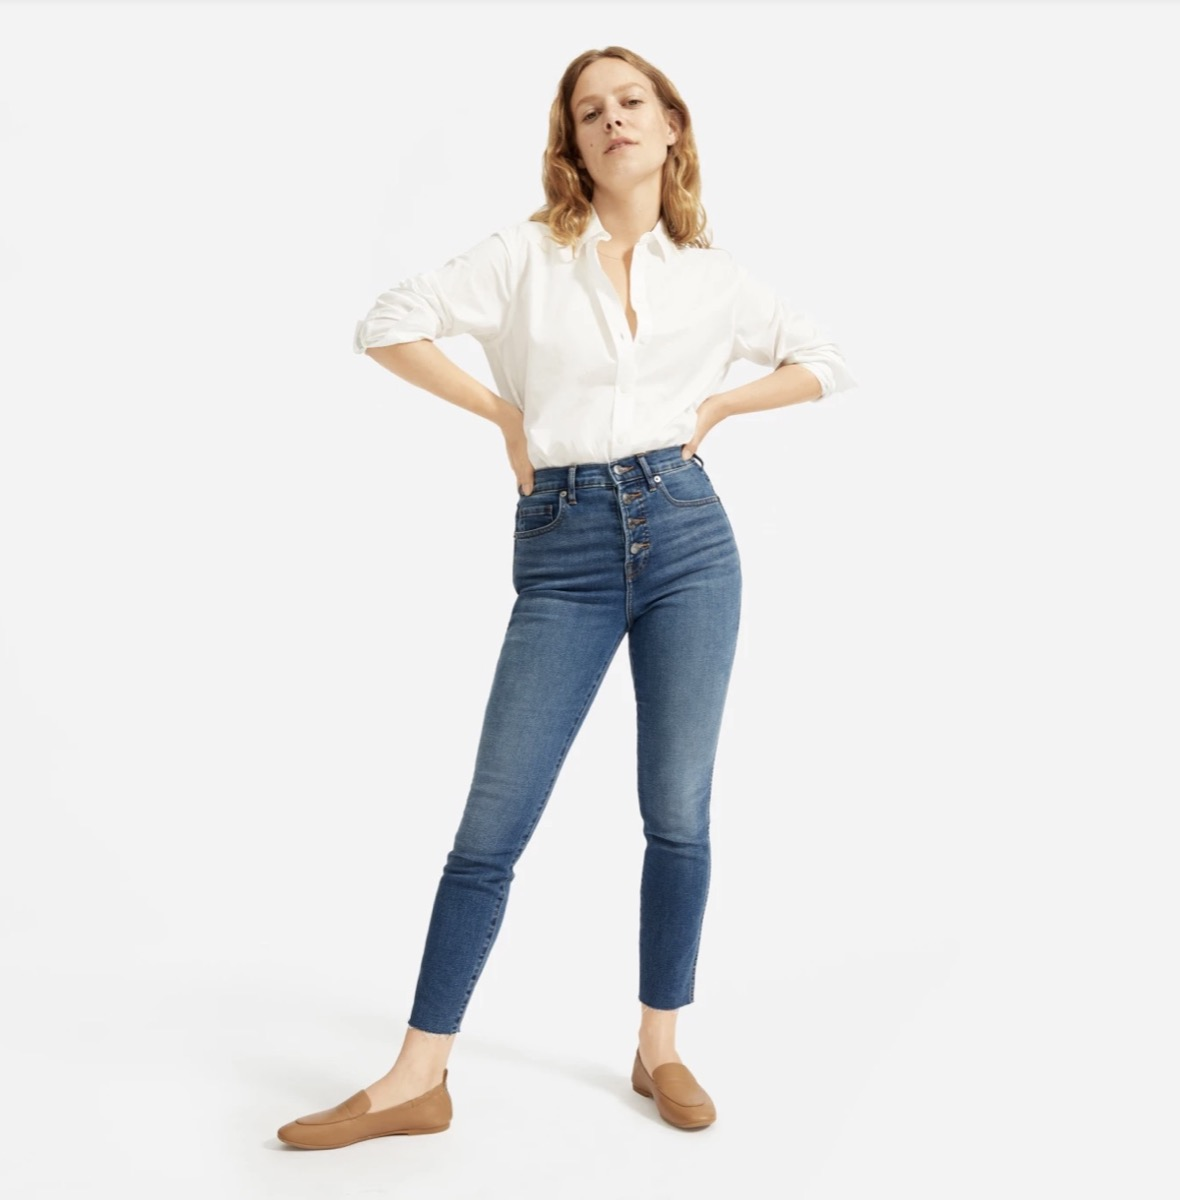 woman in high rise blue jeans